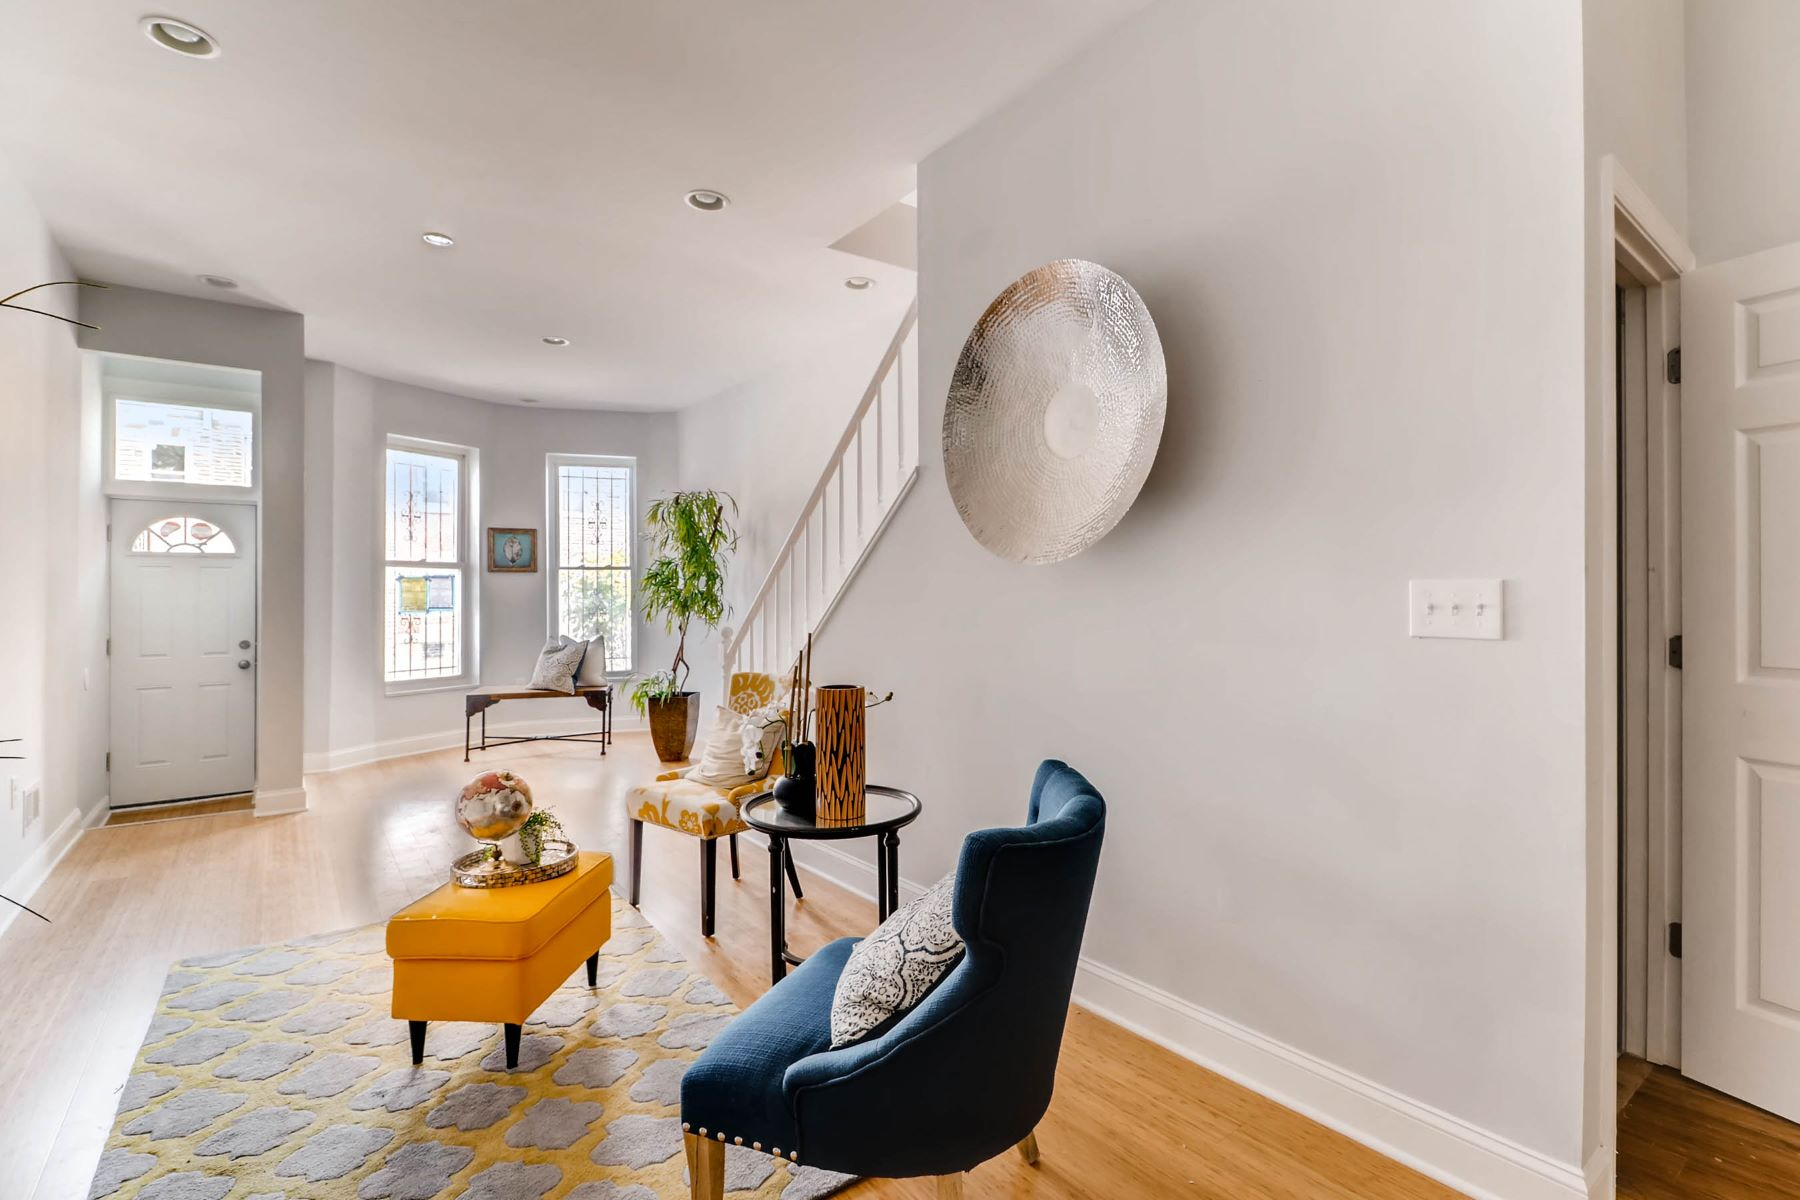 Single Family Home for Sale at Patterson Park 730 North Patterson Park Avenue Baltimore, Maryland 21205 United States